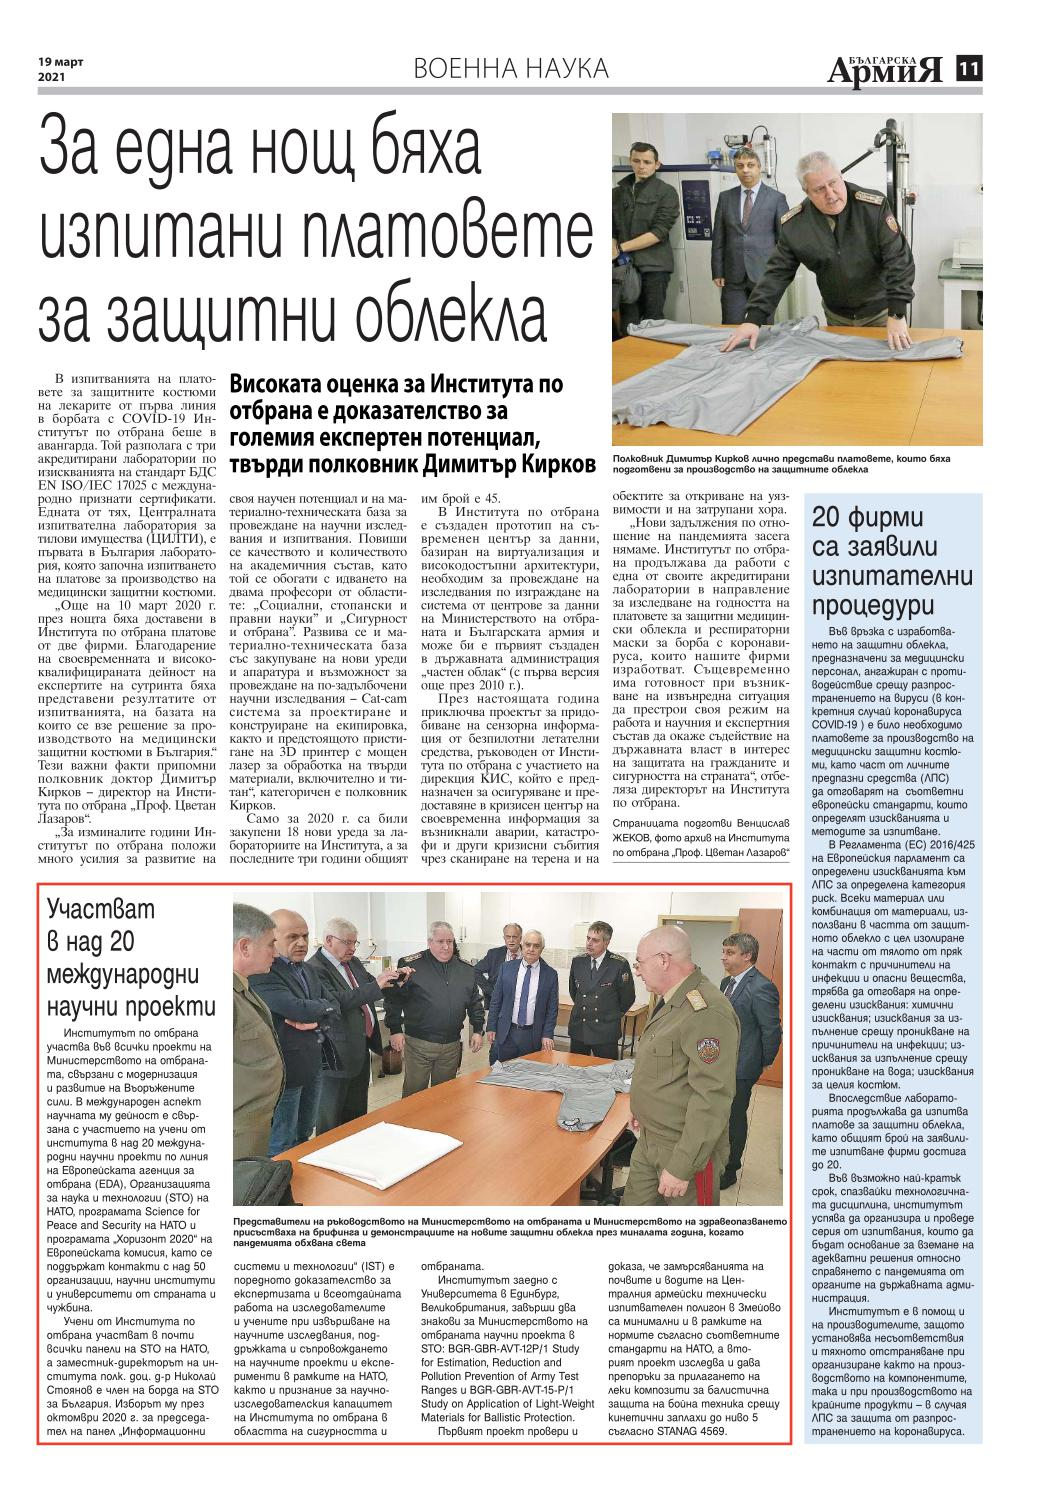 https://armymedia.bg/wp-content/uploads/2021/04/11.page1_-154.jpg